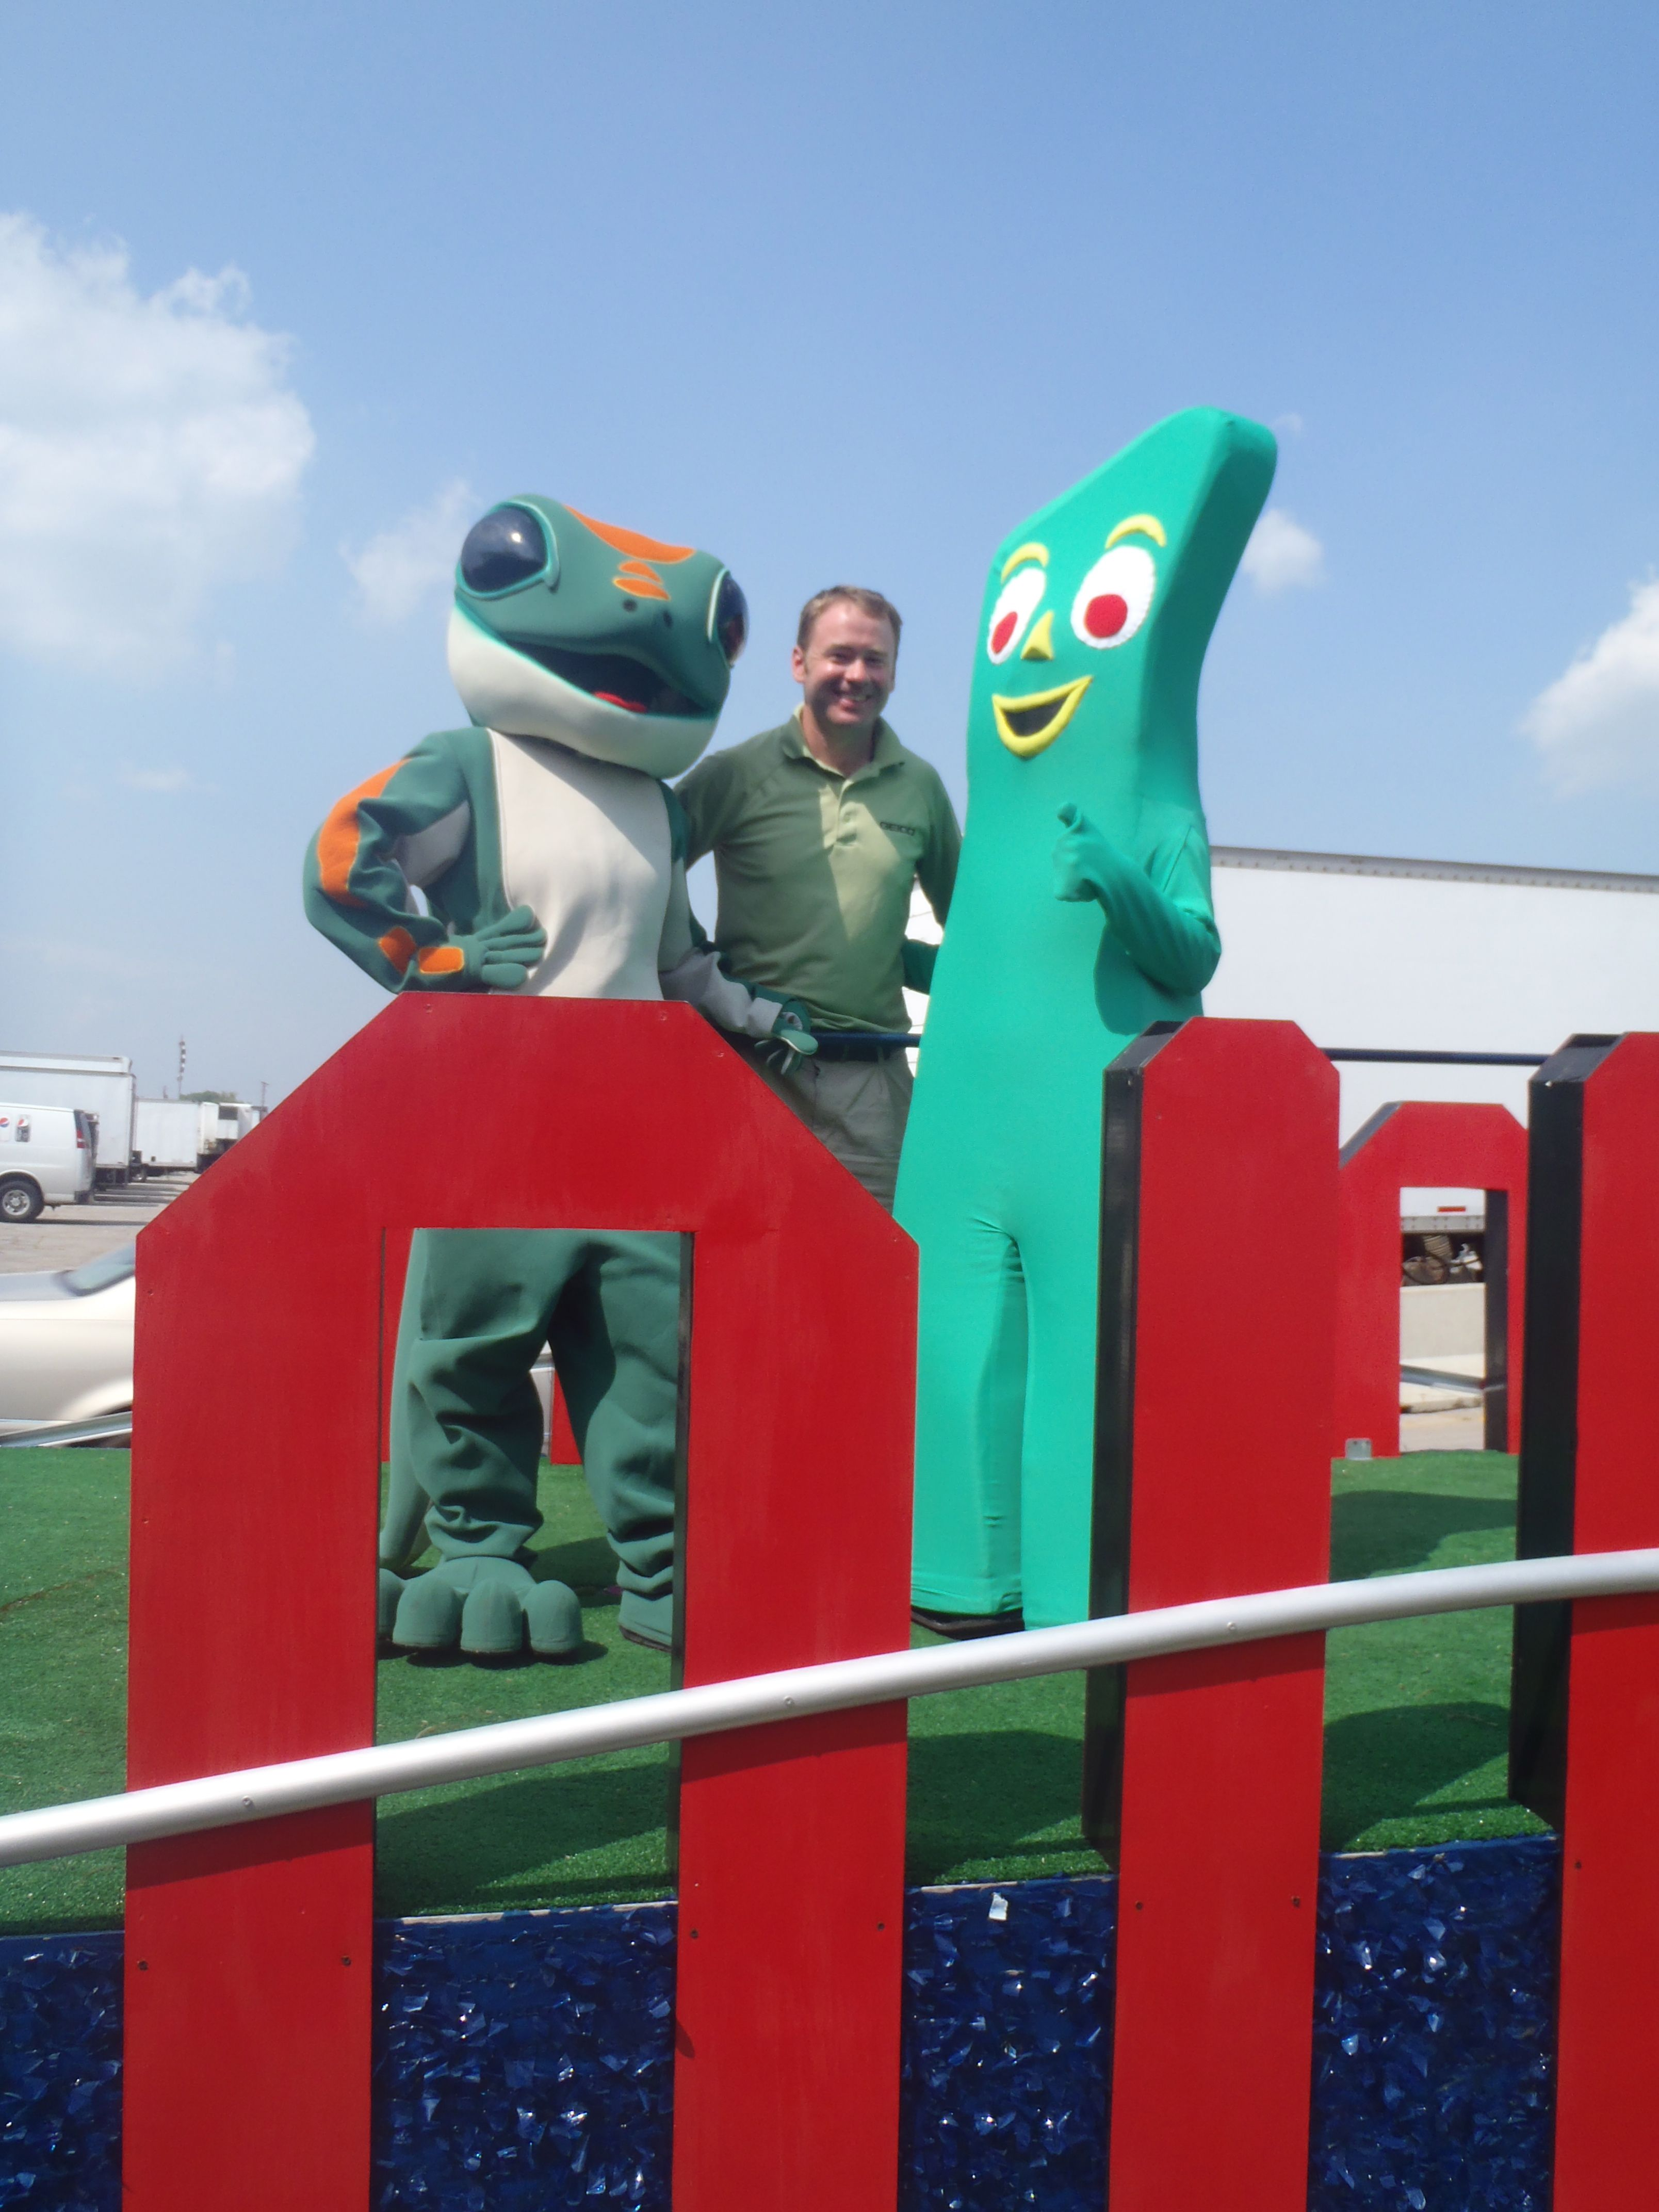 The GEICO Gecko and Gumby at the Ohio State Fair